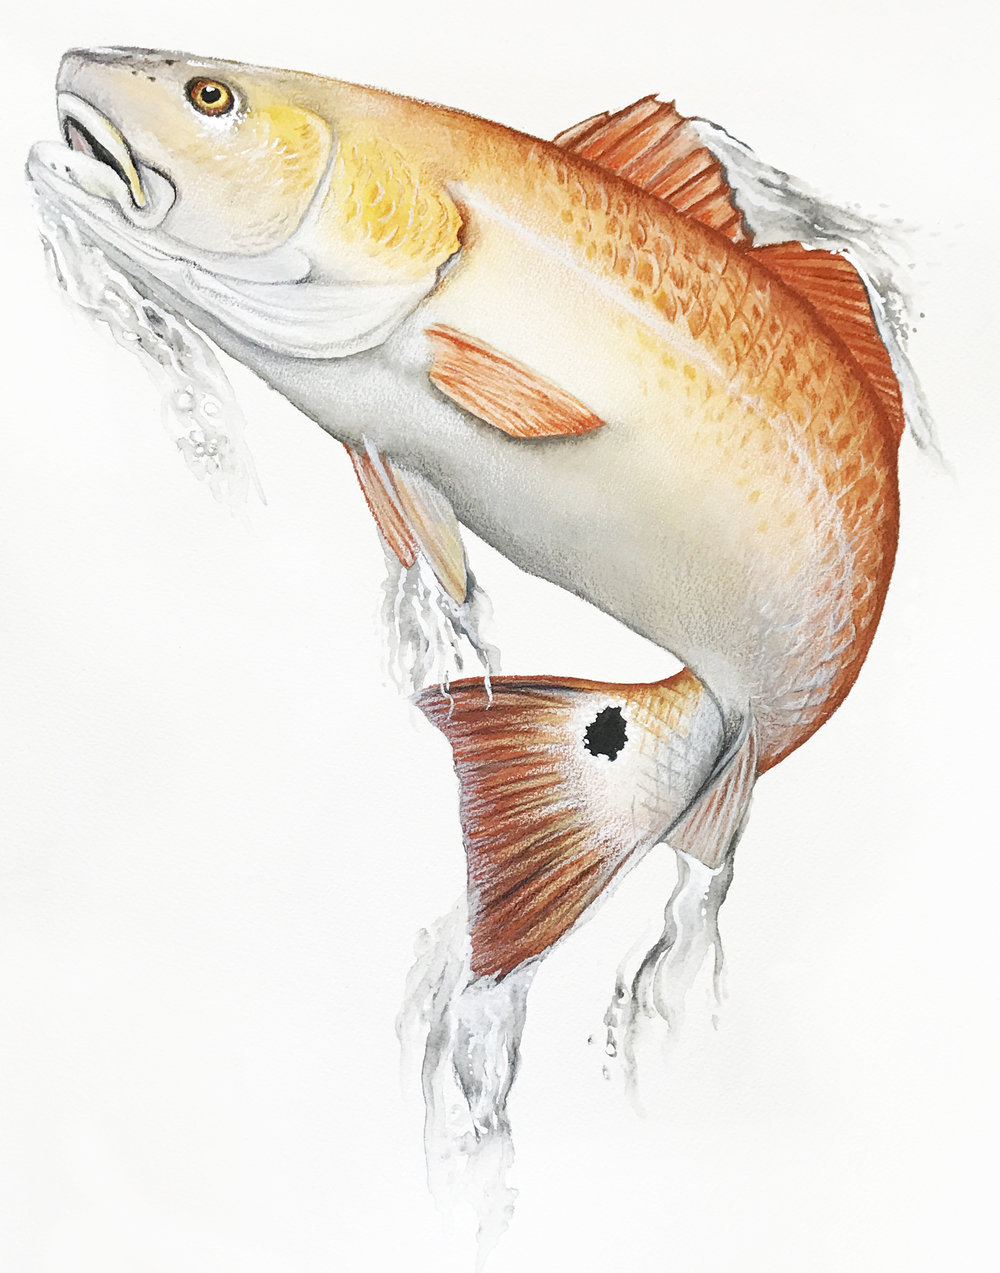 RedFish_8x10.jpg